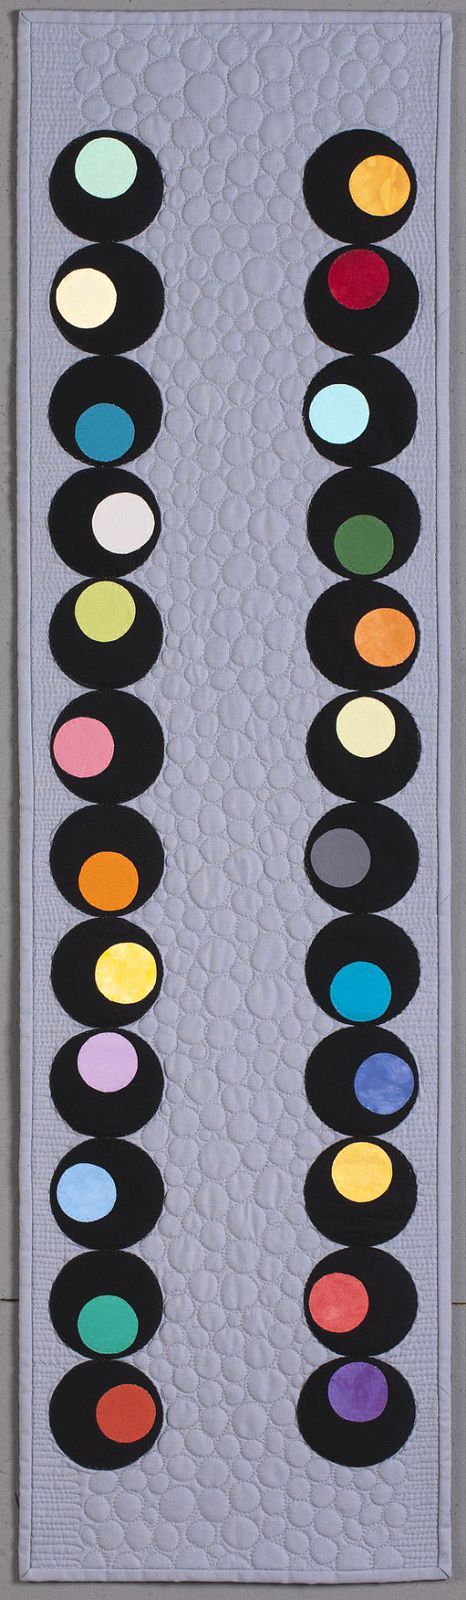 Olives table runner, in:  Quilt Retro by Jenifer Dick at Kansas City Star Quilts